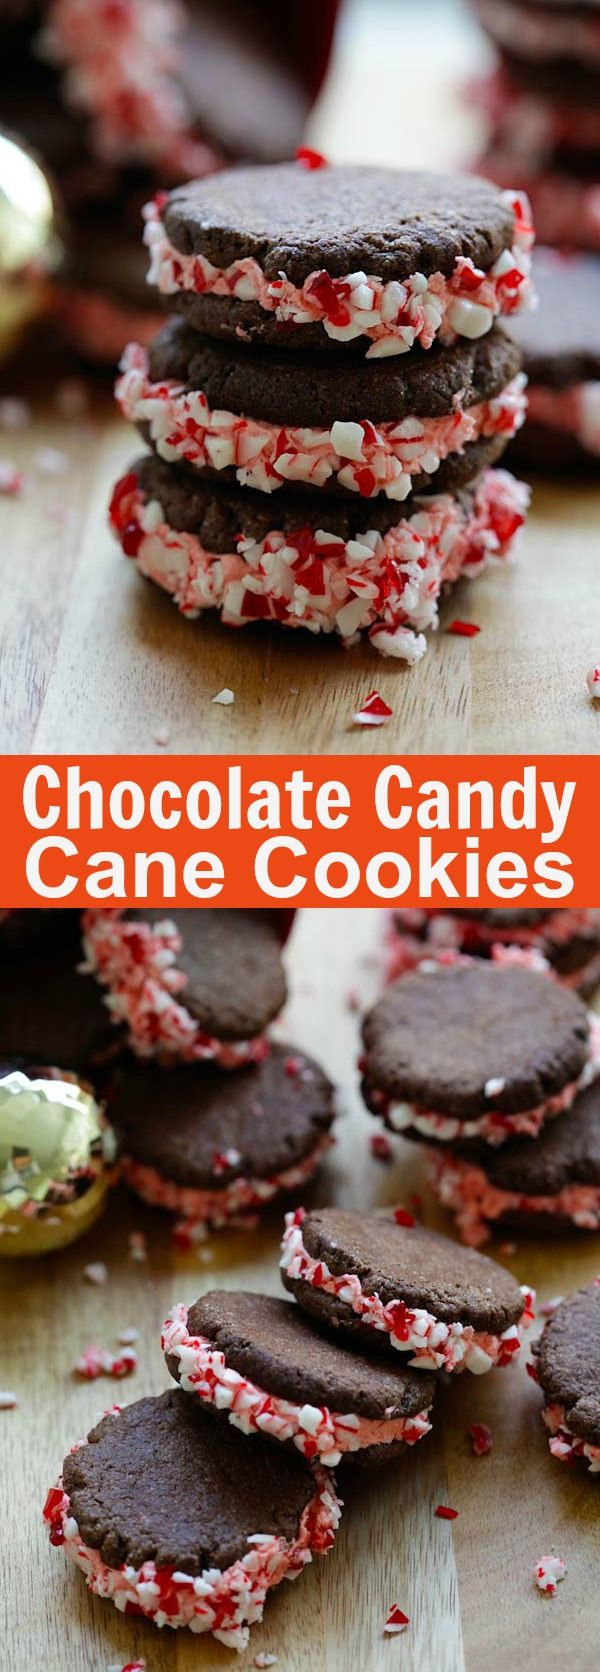 17 Best images about Cookies & Sweets on Pinterest | Bliss ...